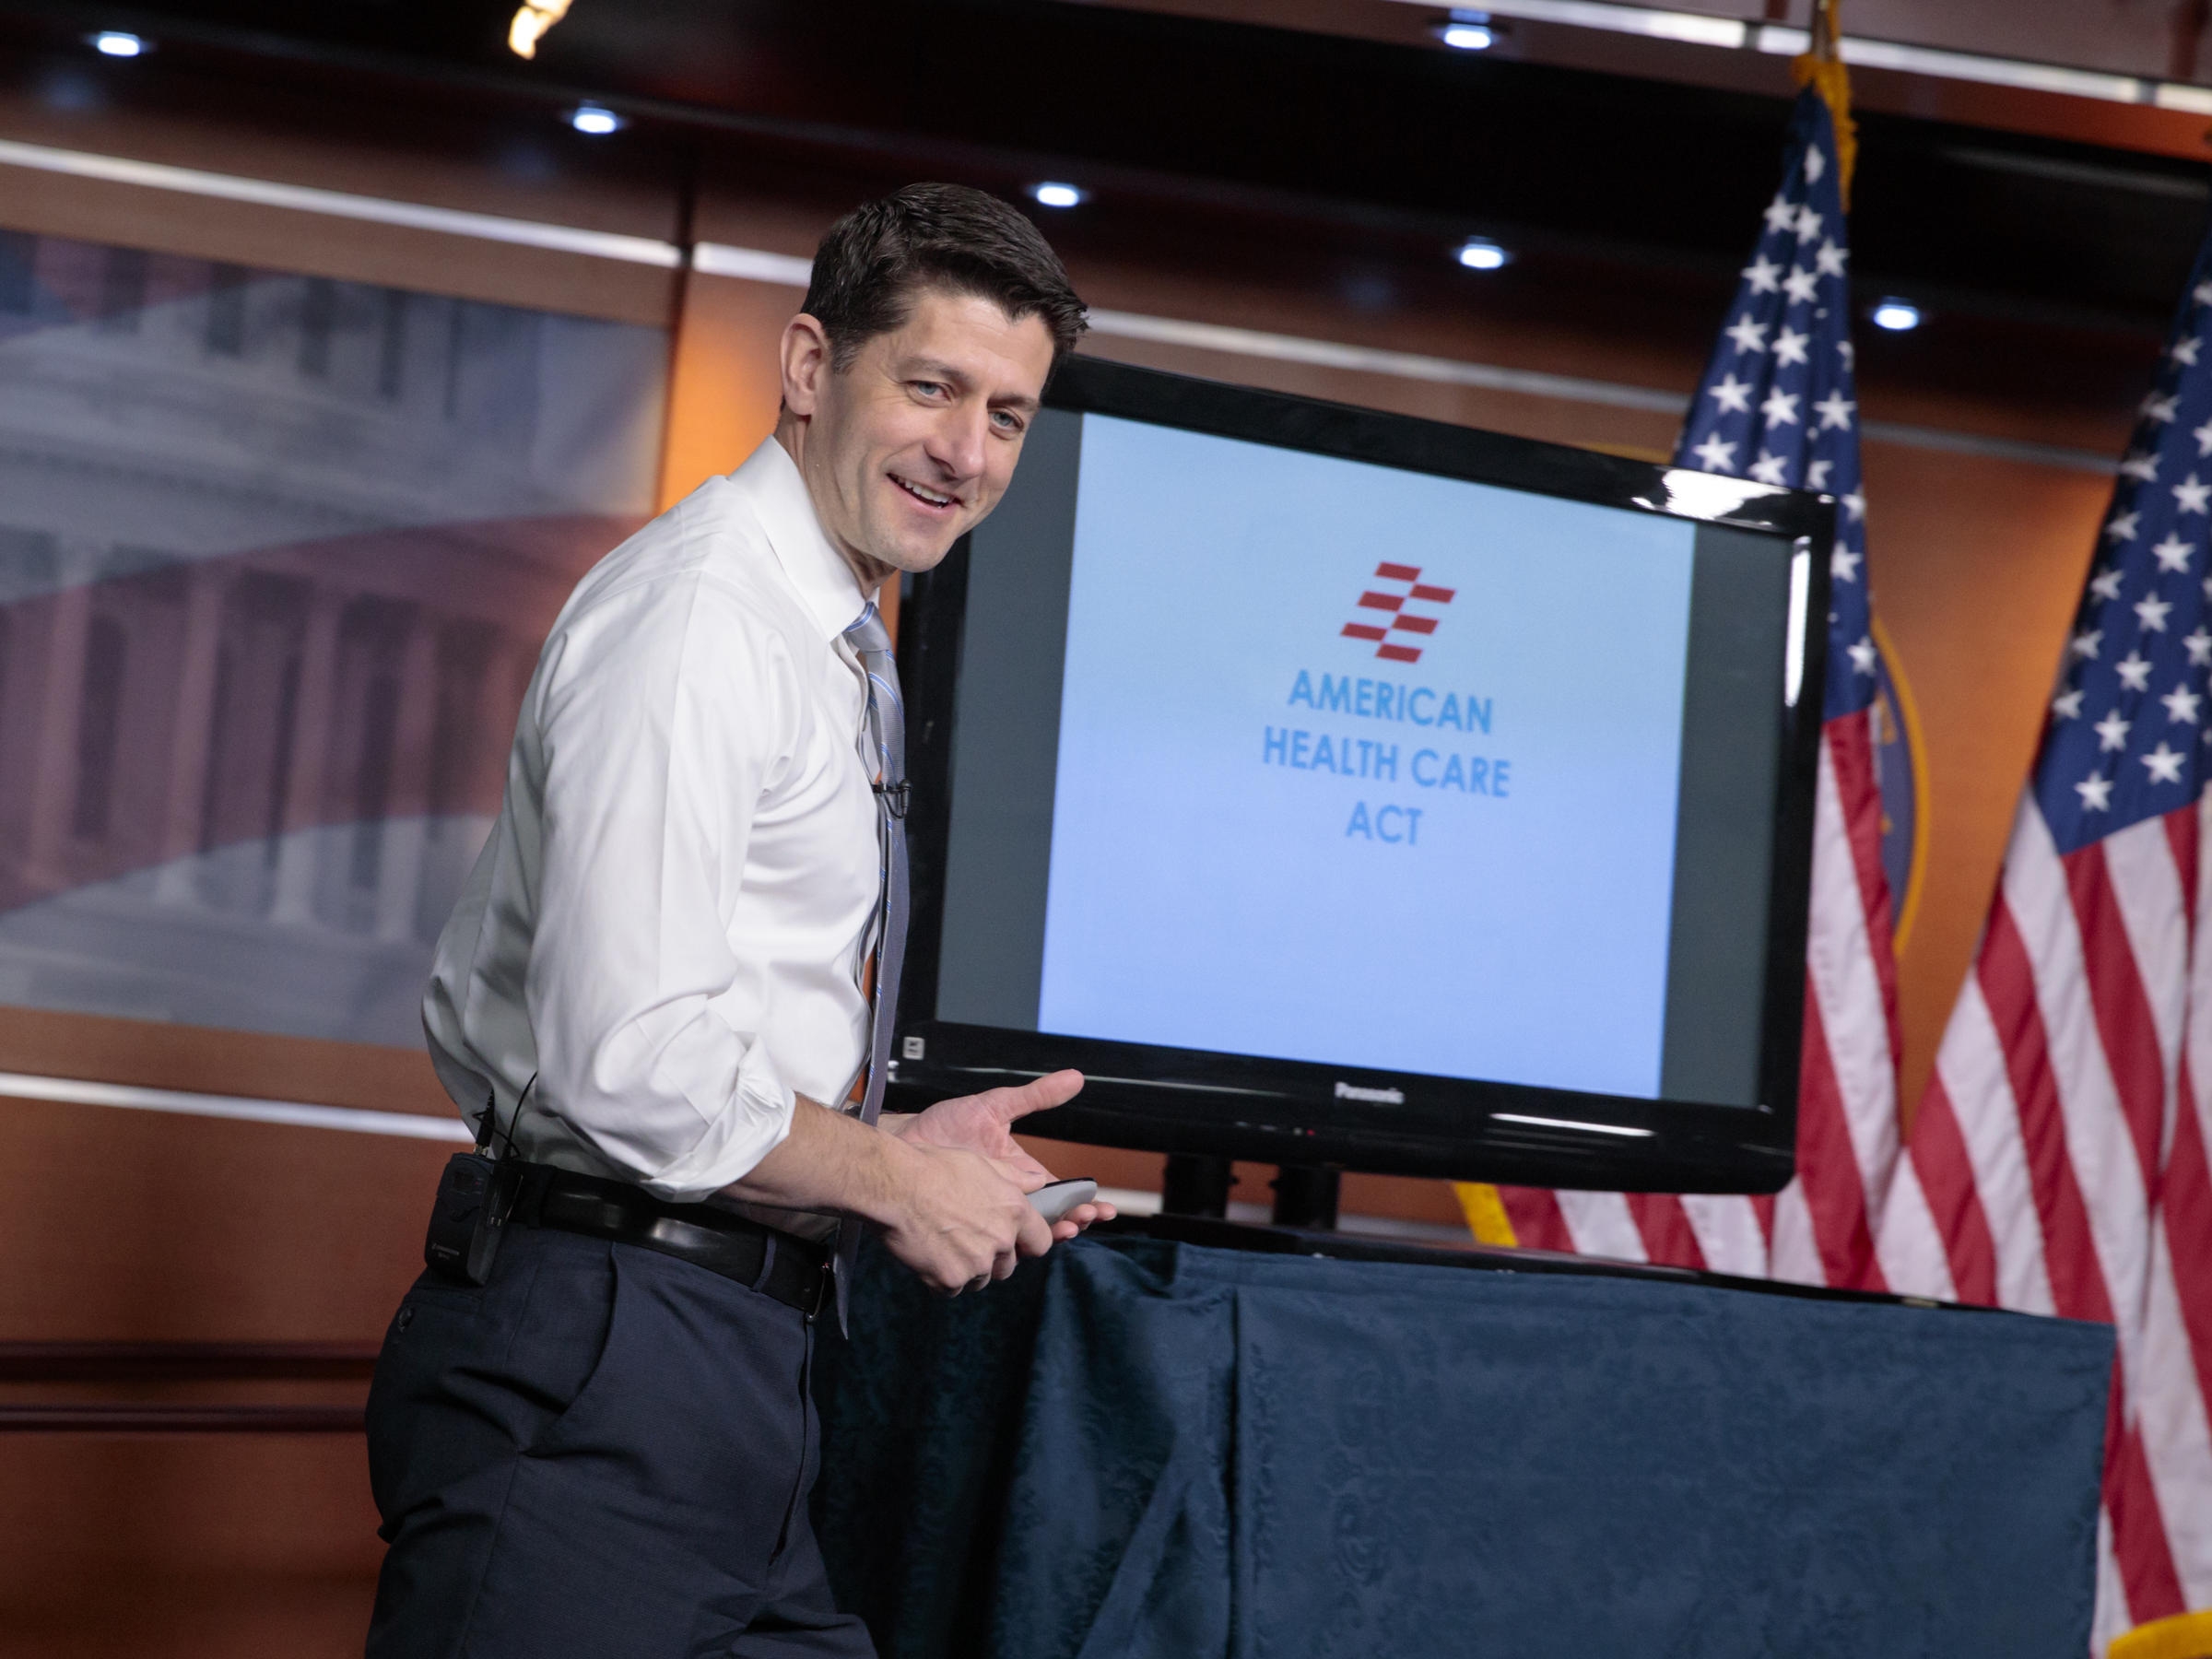 House Speaker Paul Ryan uses charts and graphs to make his case for the GOP's plan to repeal and replace the Affordable Care Act